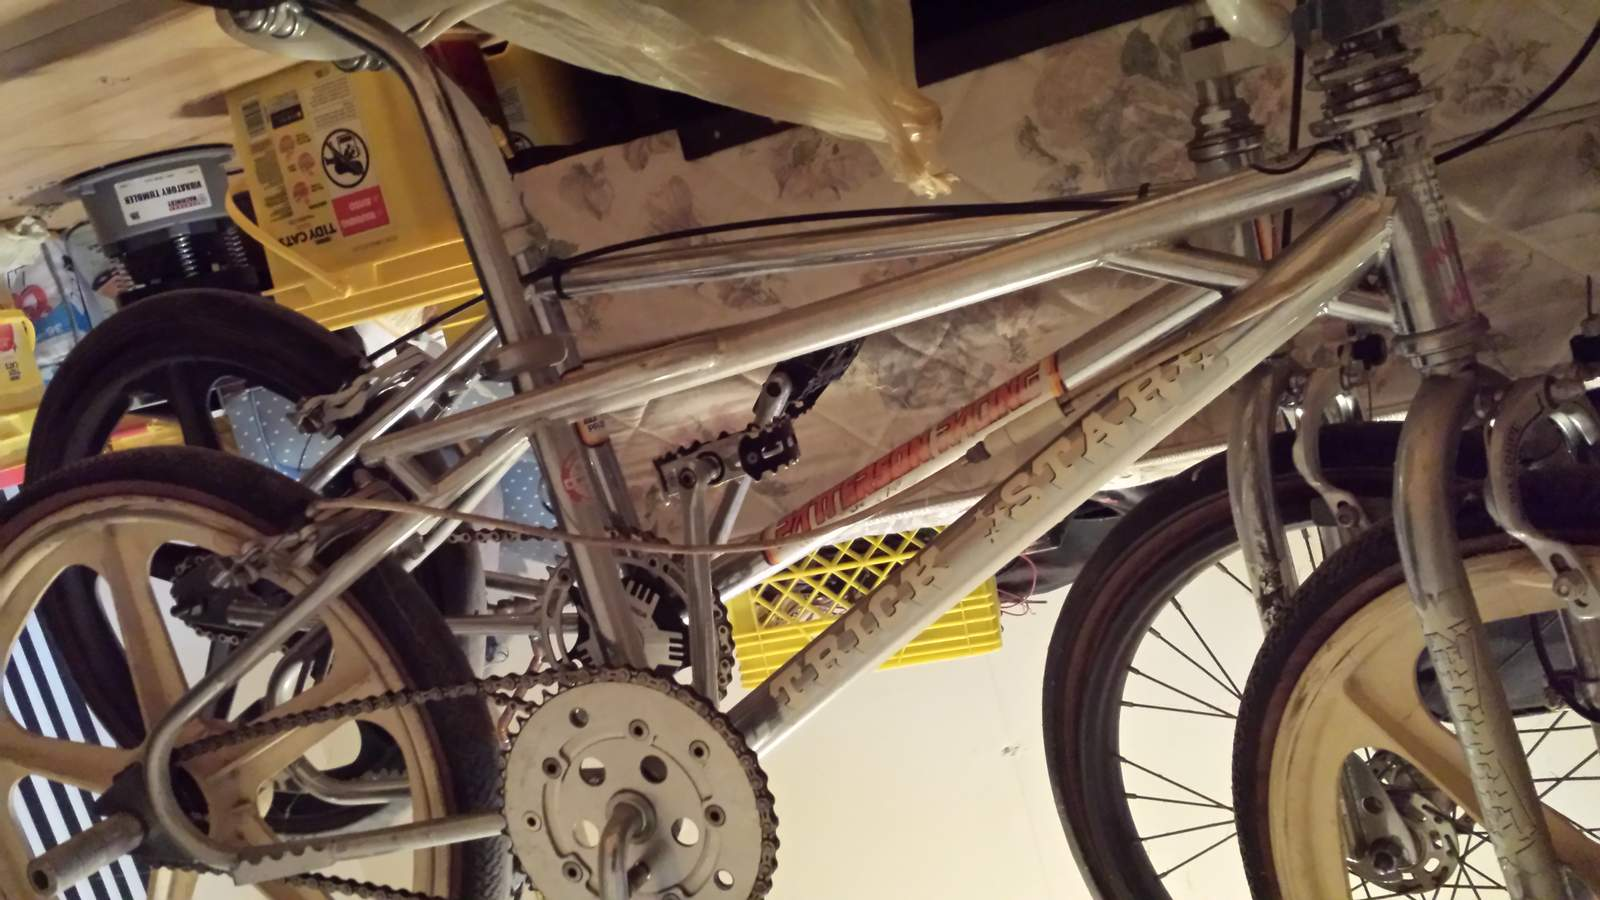 http://uploads.bmxmuseum.com/user-images/210357/20160828_18385457c381c75d.jpg